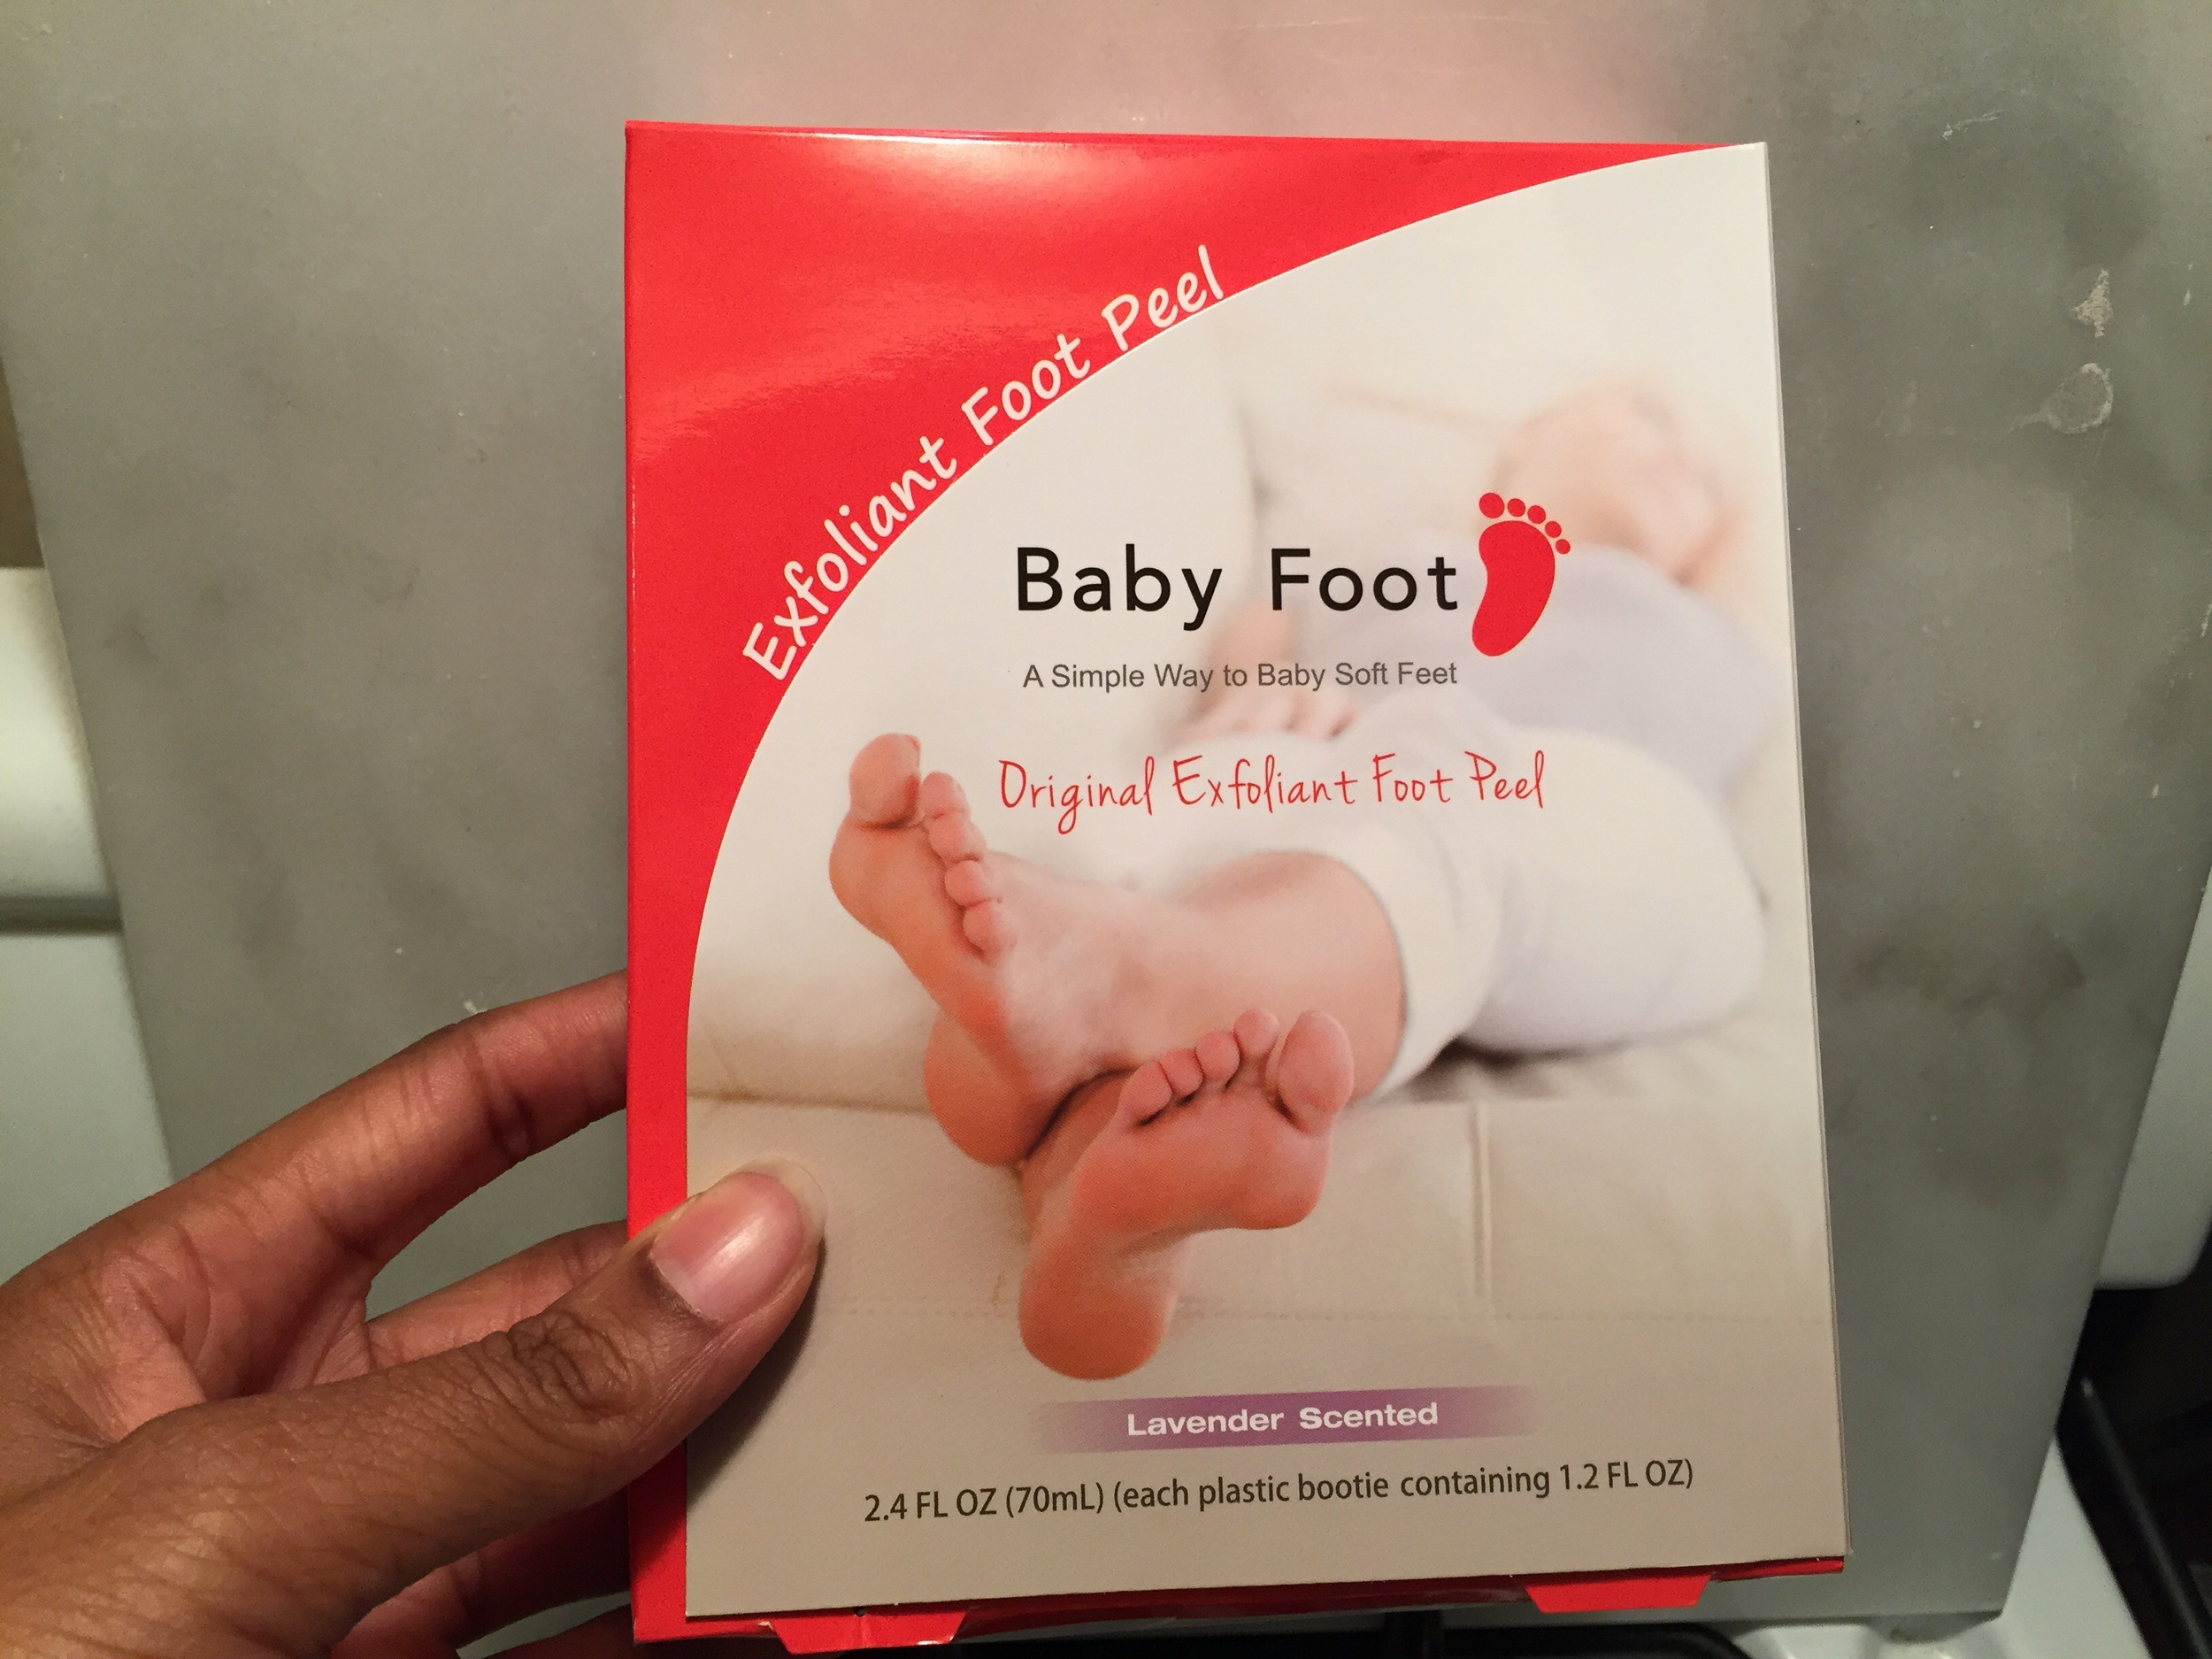 Baby Foot lavender scented foot peel